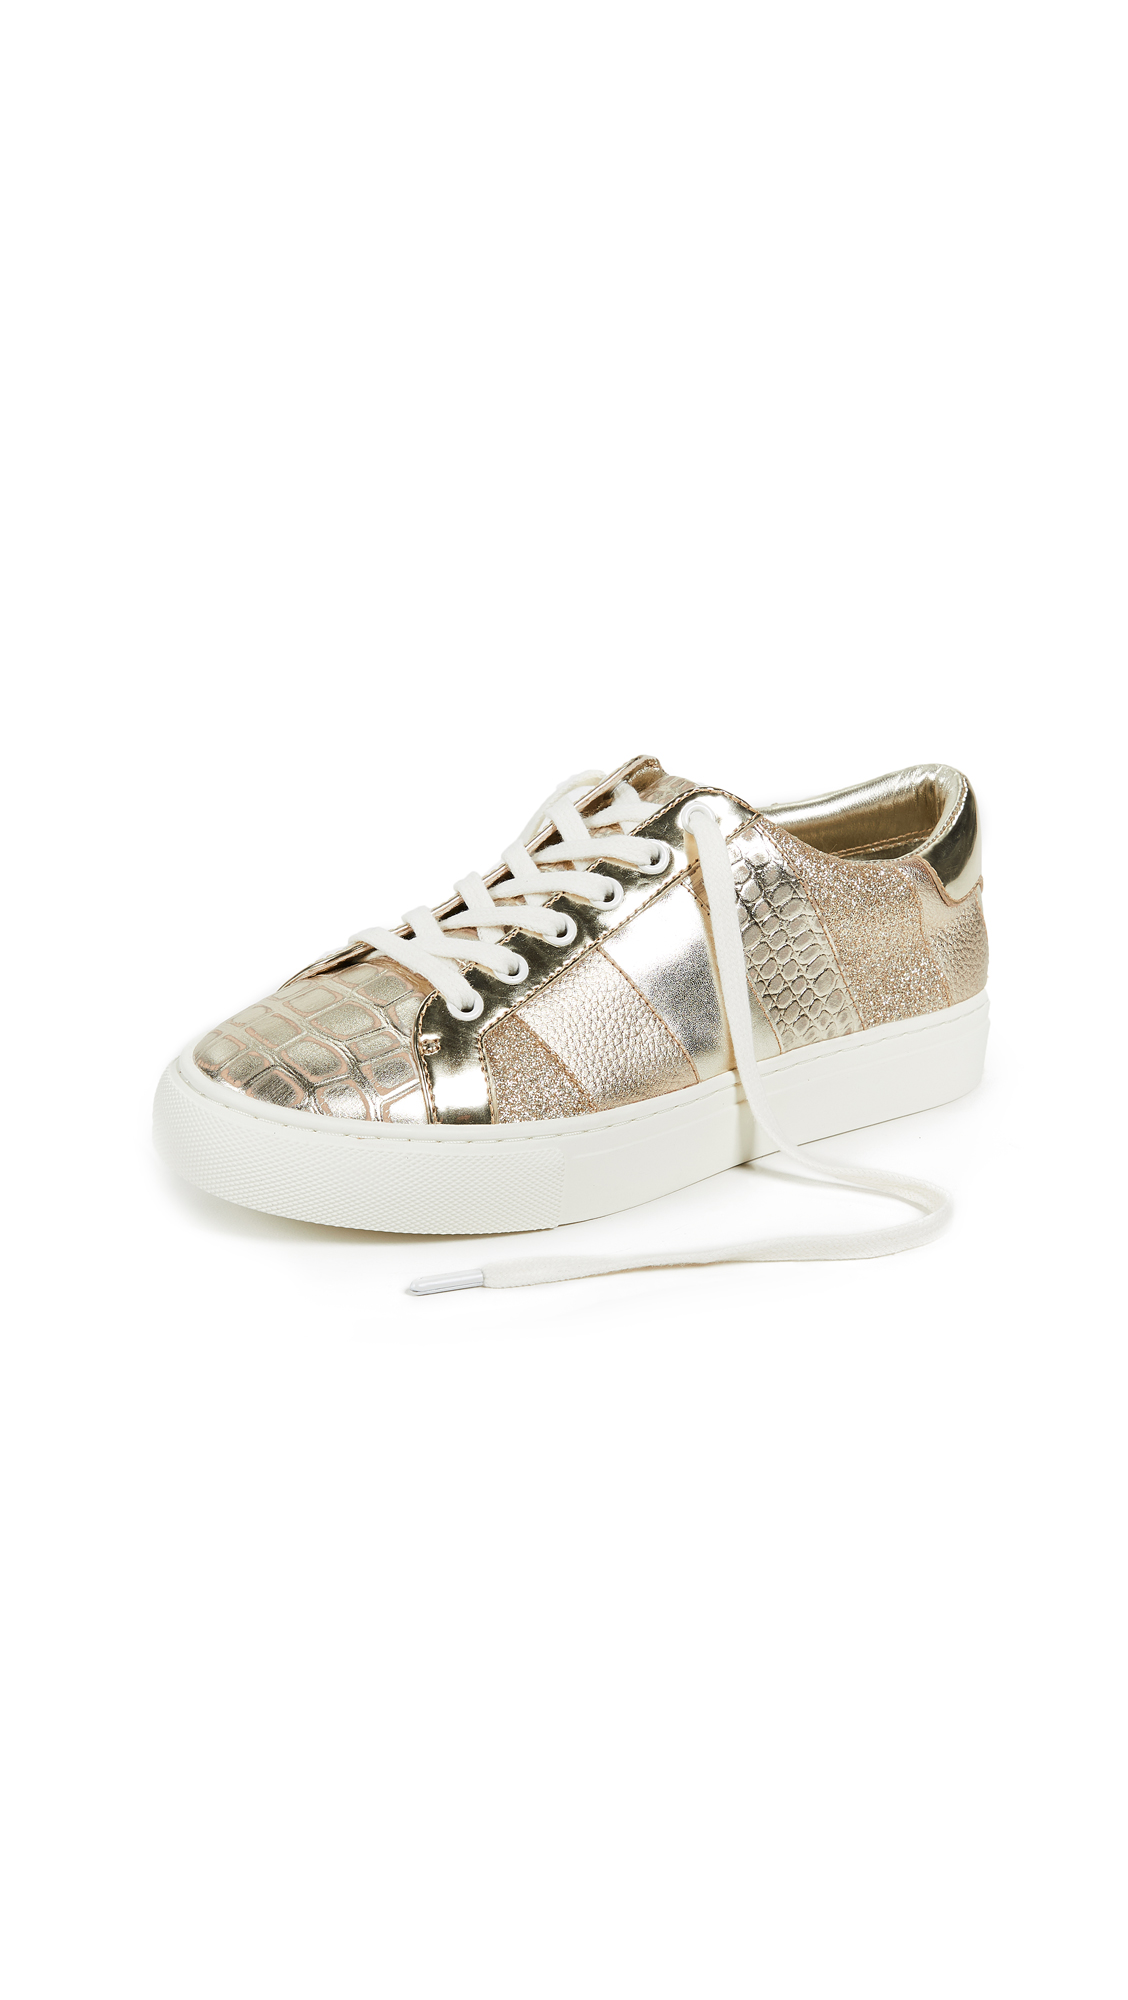 Tory Burch Ames Sneakers - Spark Gold